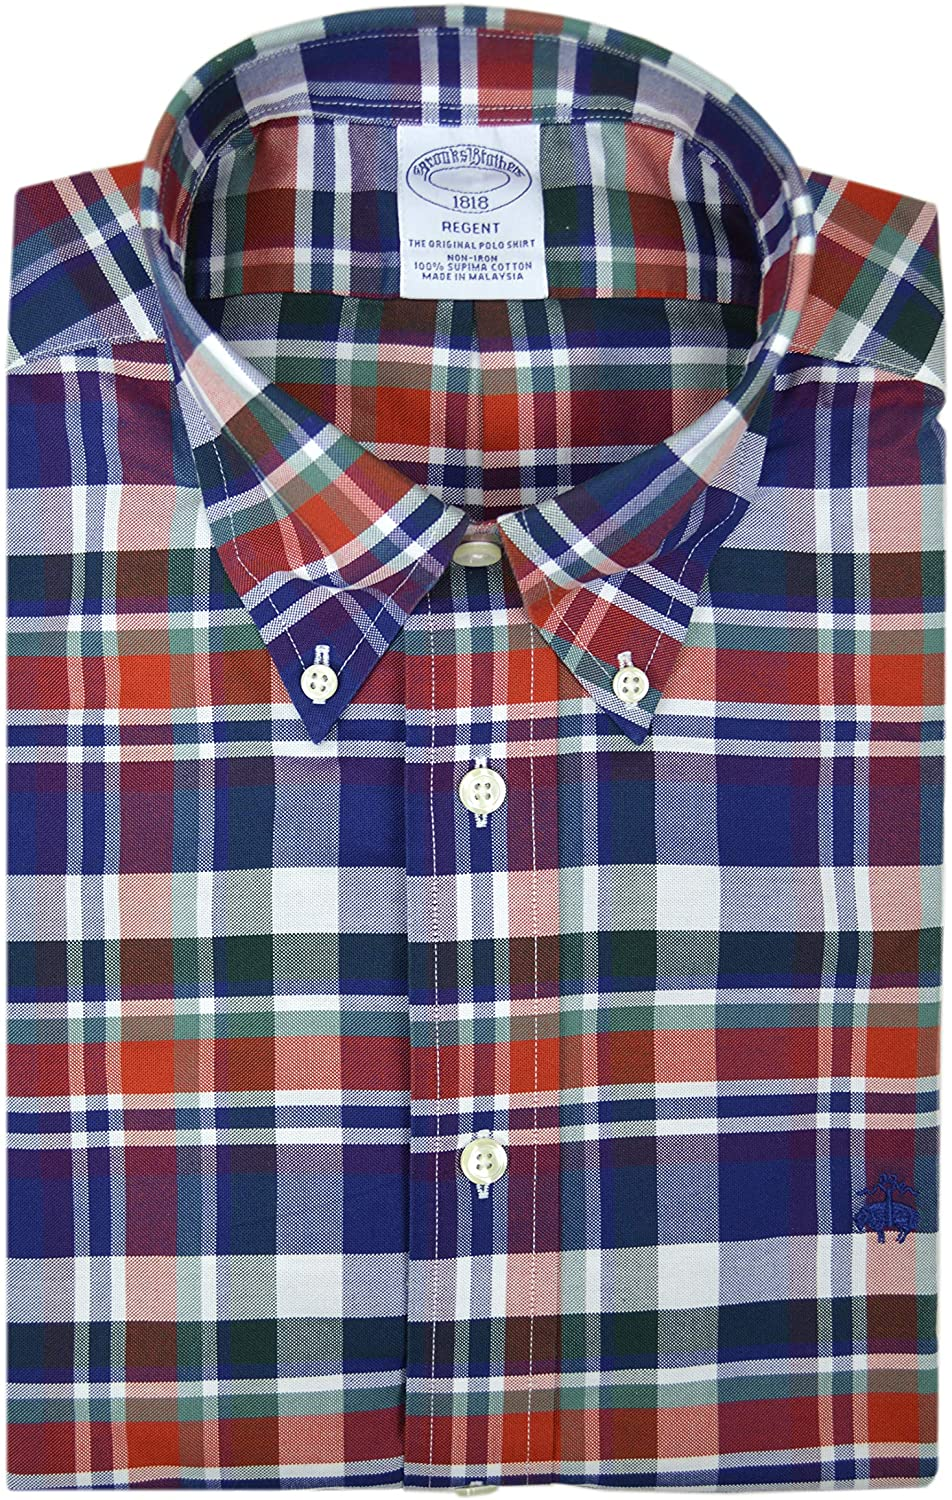 Brooks Brothers Mens Regent Fit 69029 Supima Cotton Embroidered Button Down Shirt Multicolored Plaid